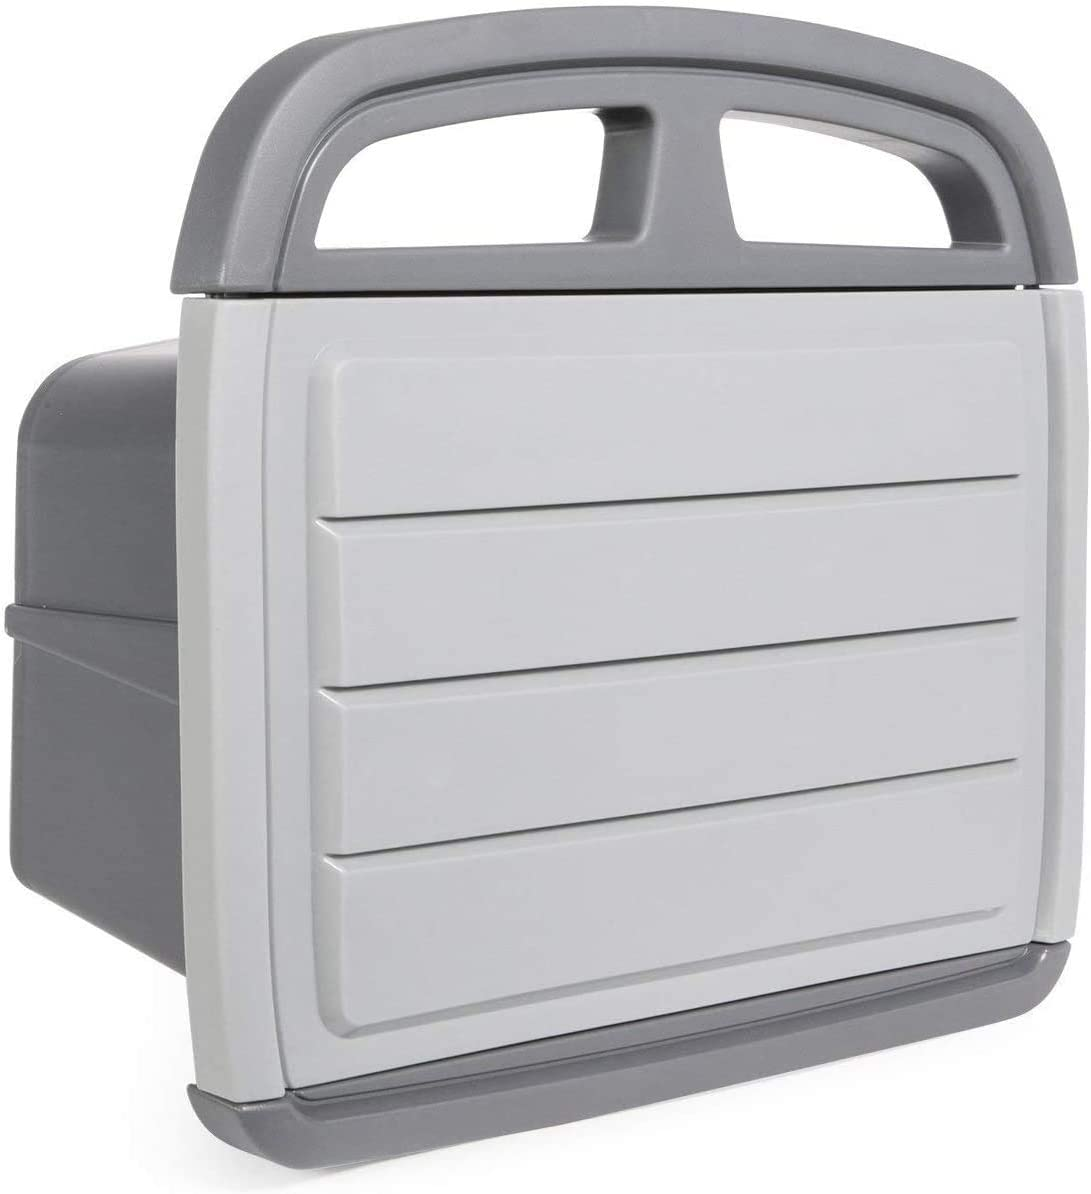 CrownLand Garden Hose Holder with Storage Compartment, Garden Toolbox Hose Reel 150 Ft Garden Hose Water Pipe Available